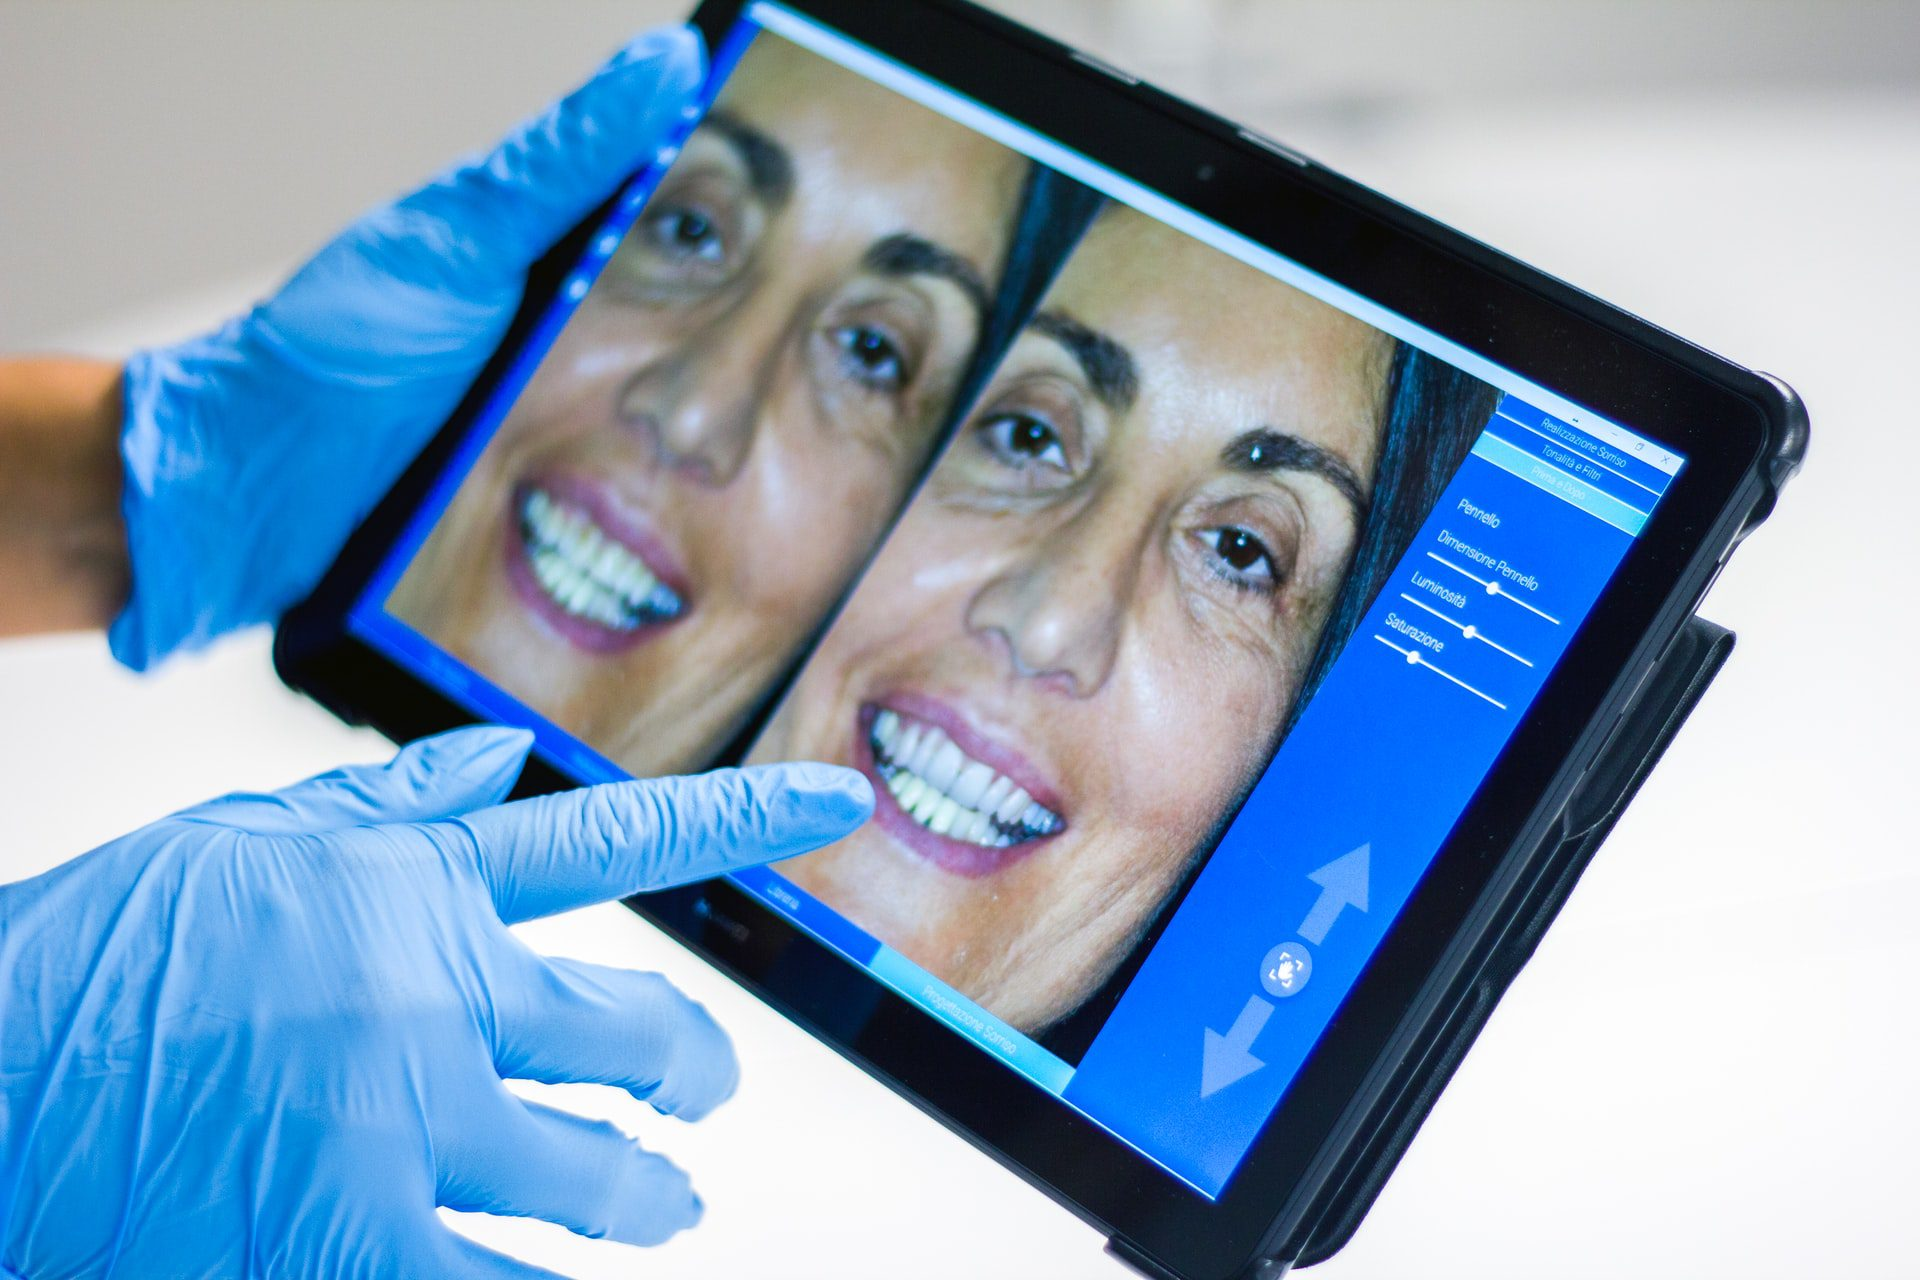 A New Tool in Aesthetic Dentistry: A Digital Smile Design